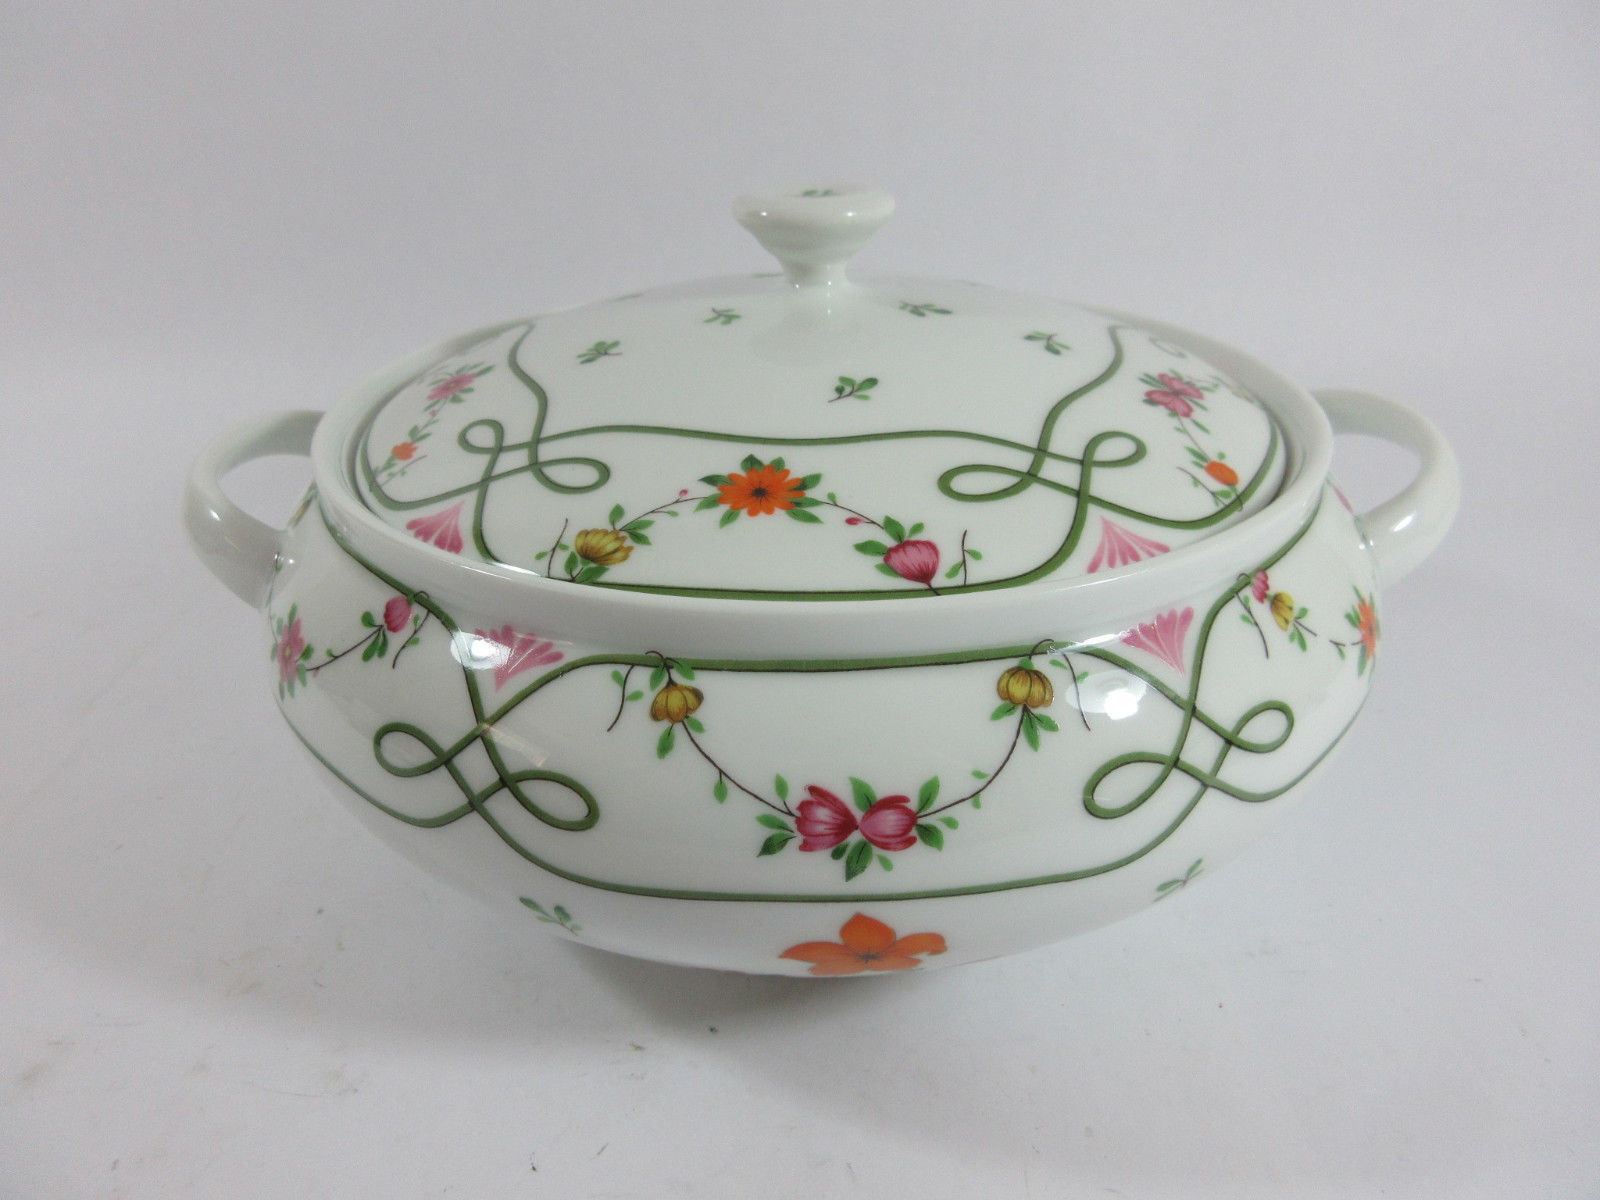 Ceralene Raynaud Limoges Guirlandes Round and 50 similar items